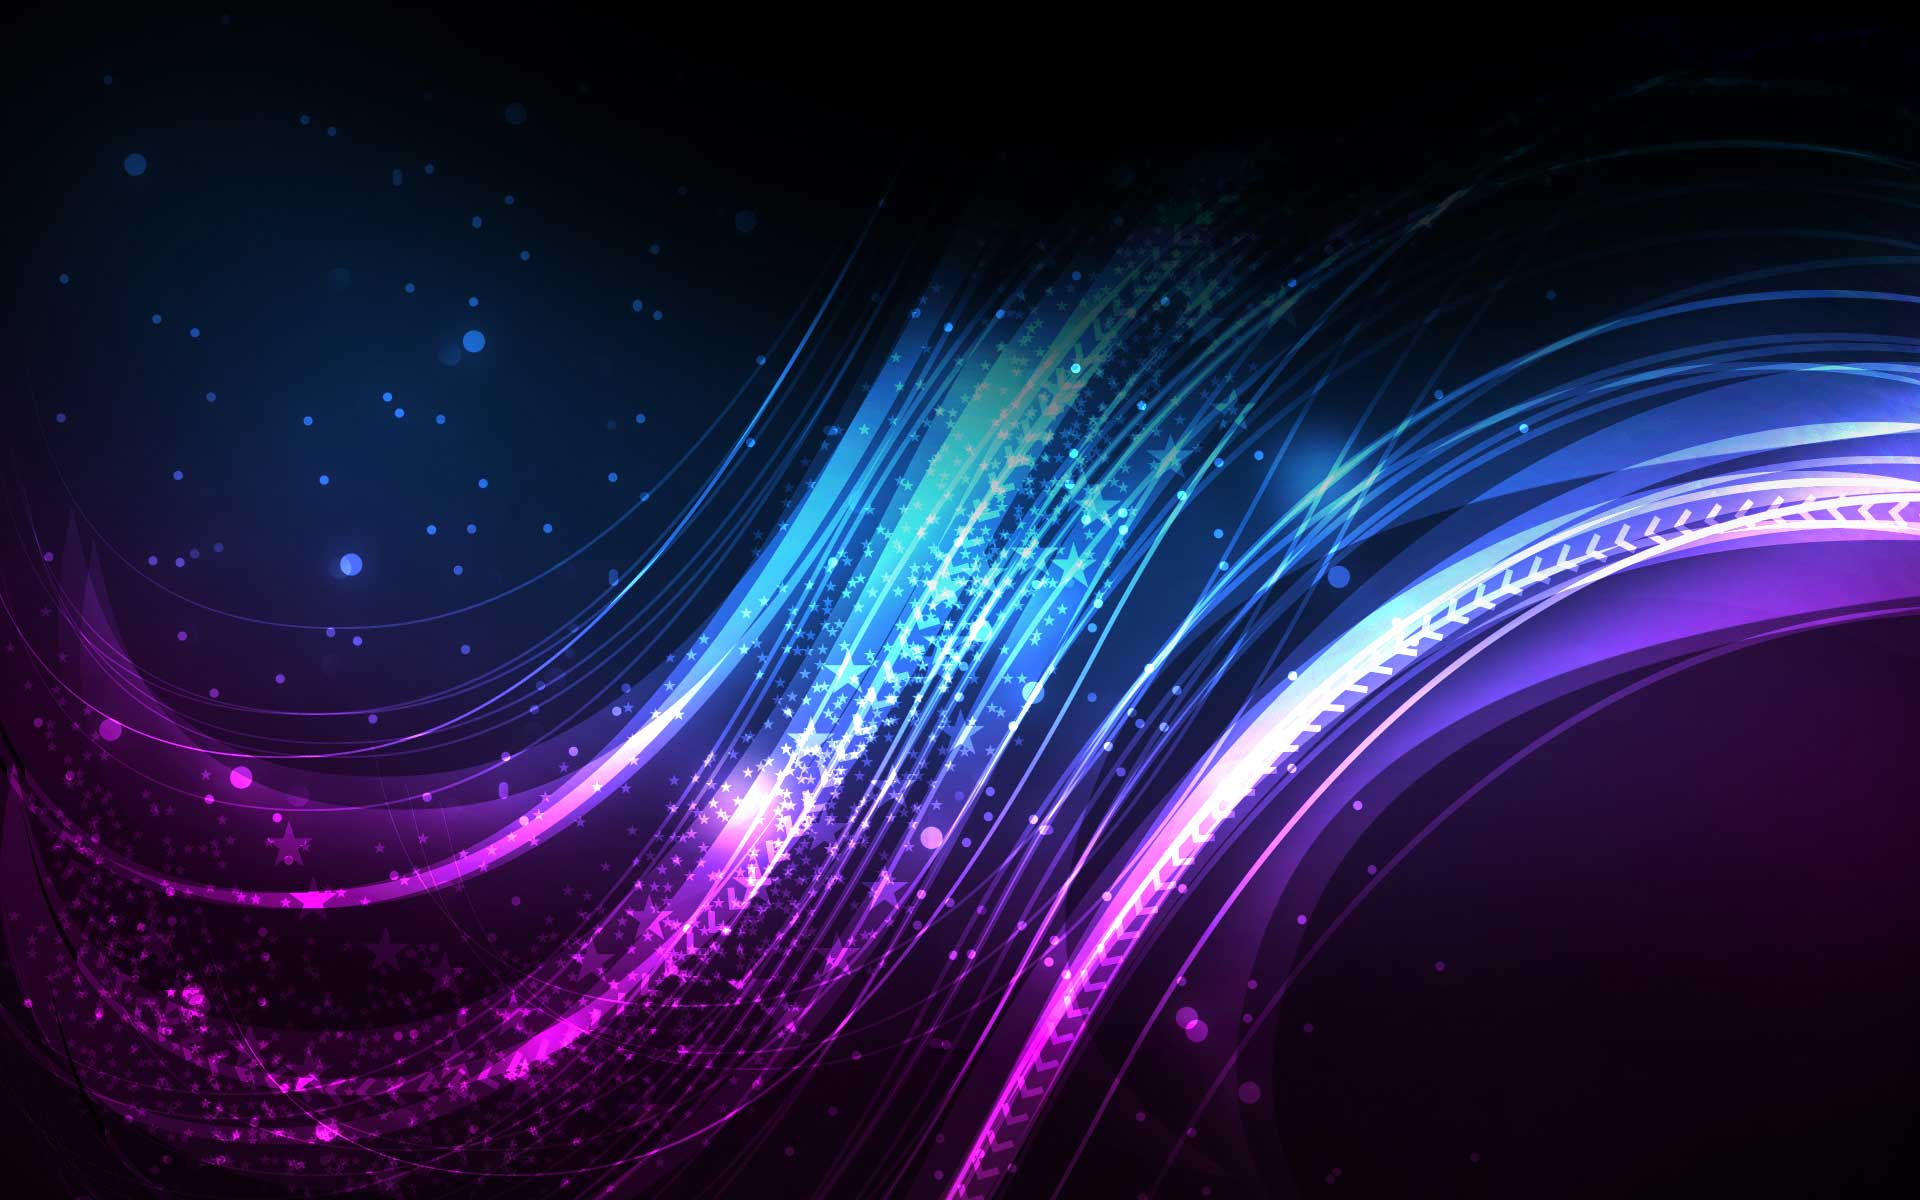 Art Neon Wallpaper Background 197 Is High Definition You 1920x1200